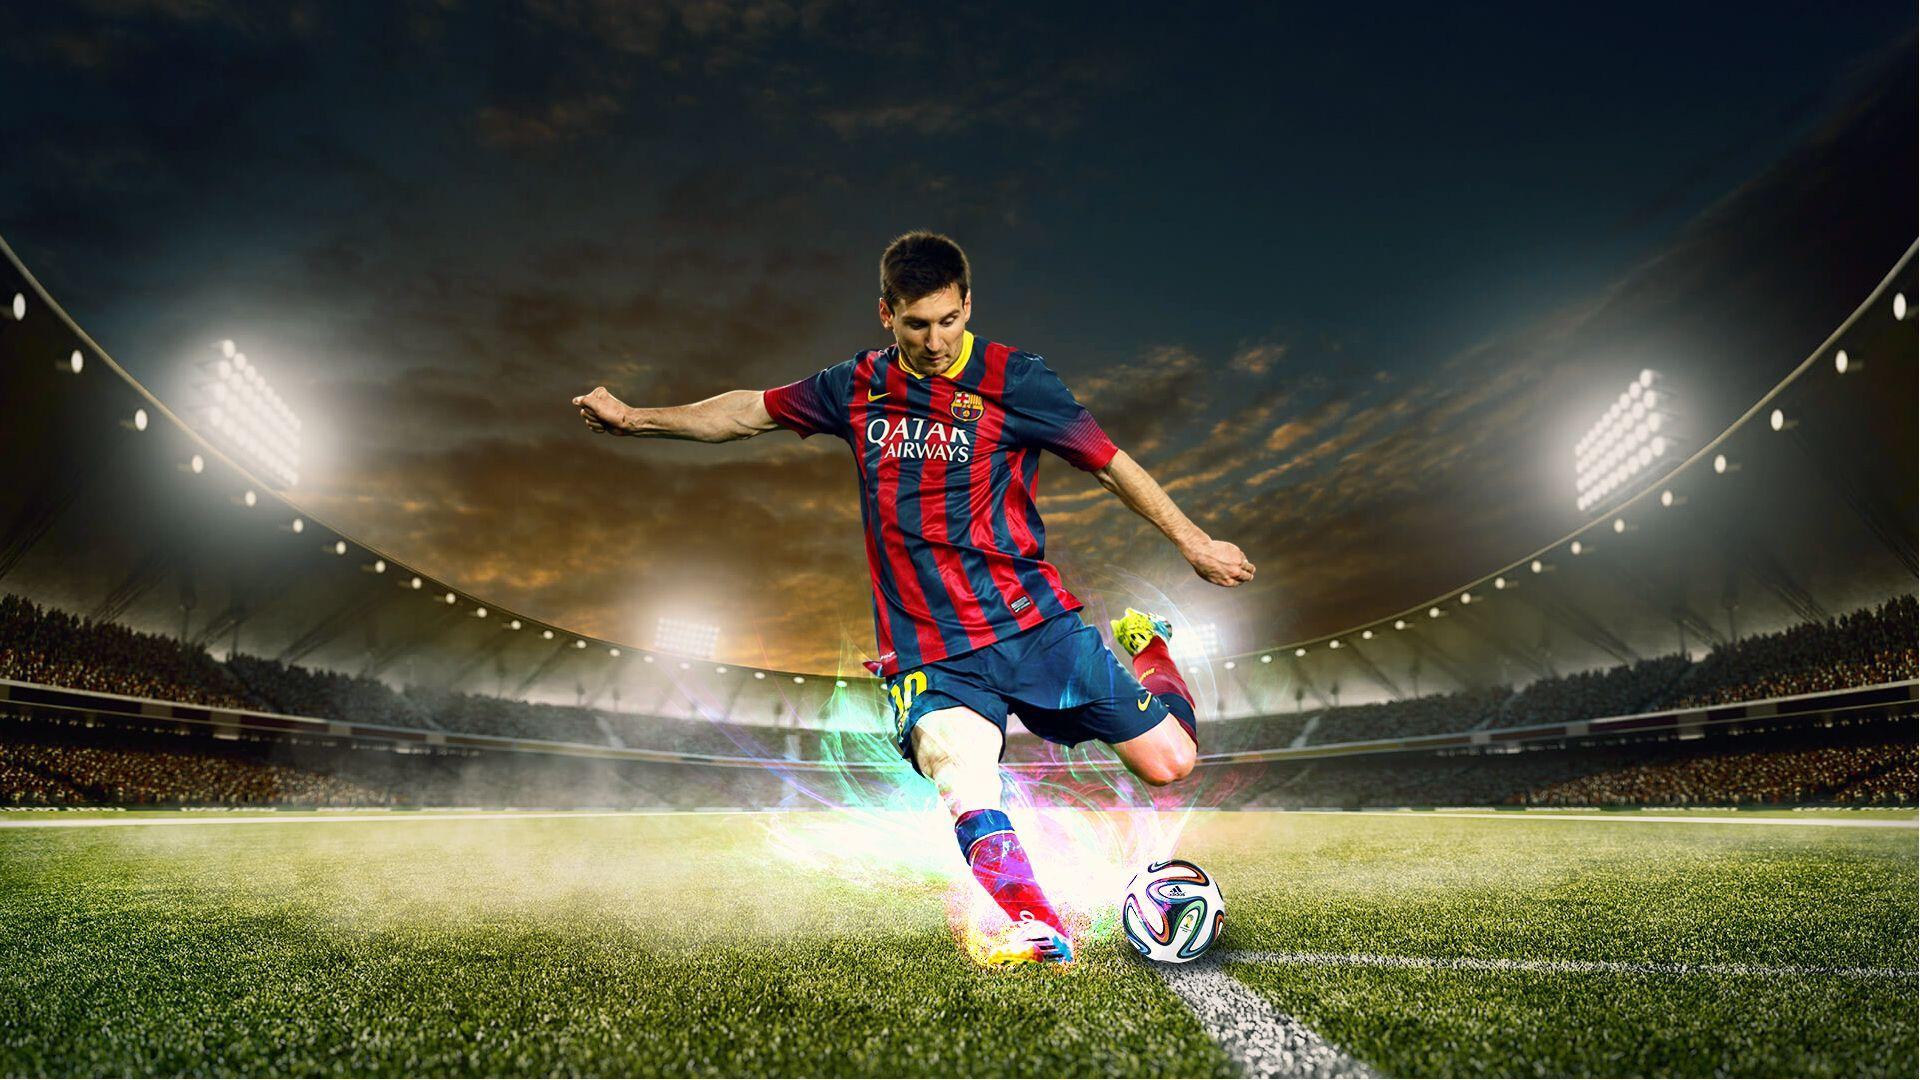 Football Wallpaper Sport Football Kids: Football 2018 Wallpapers